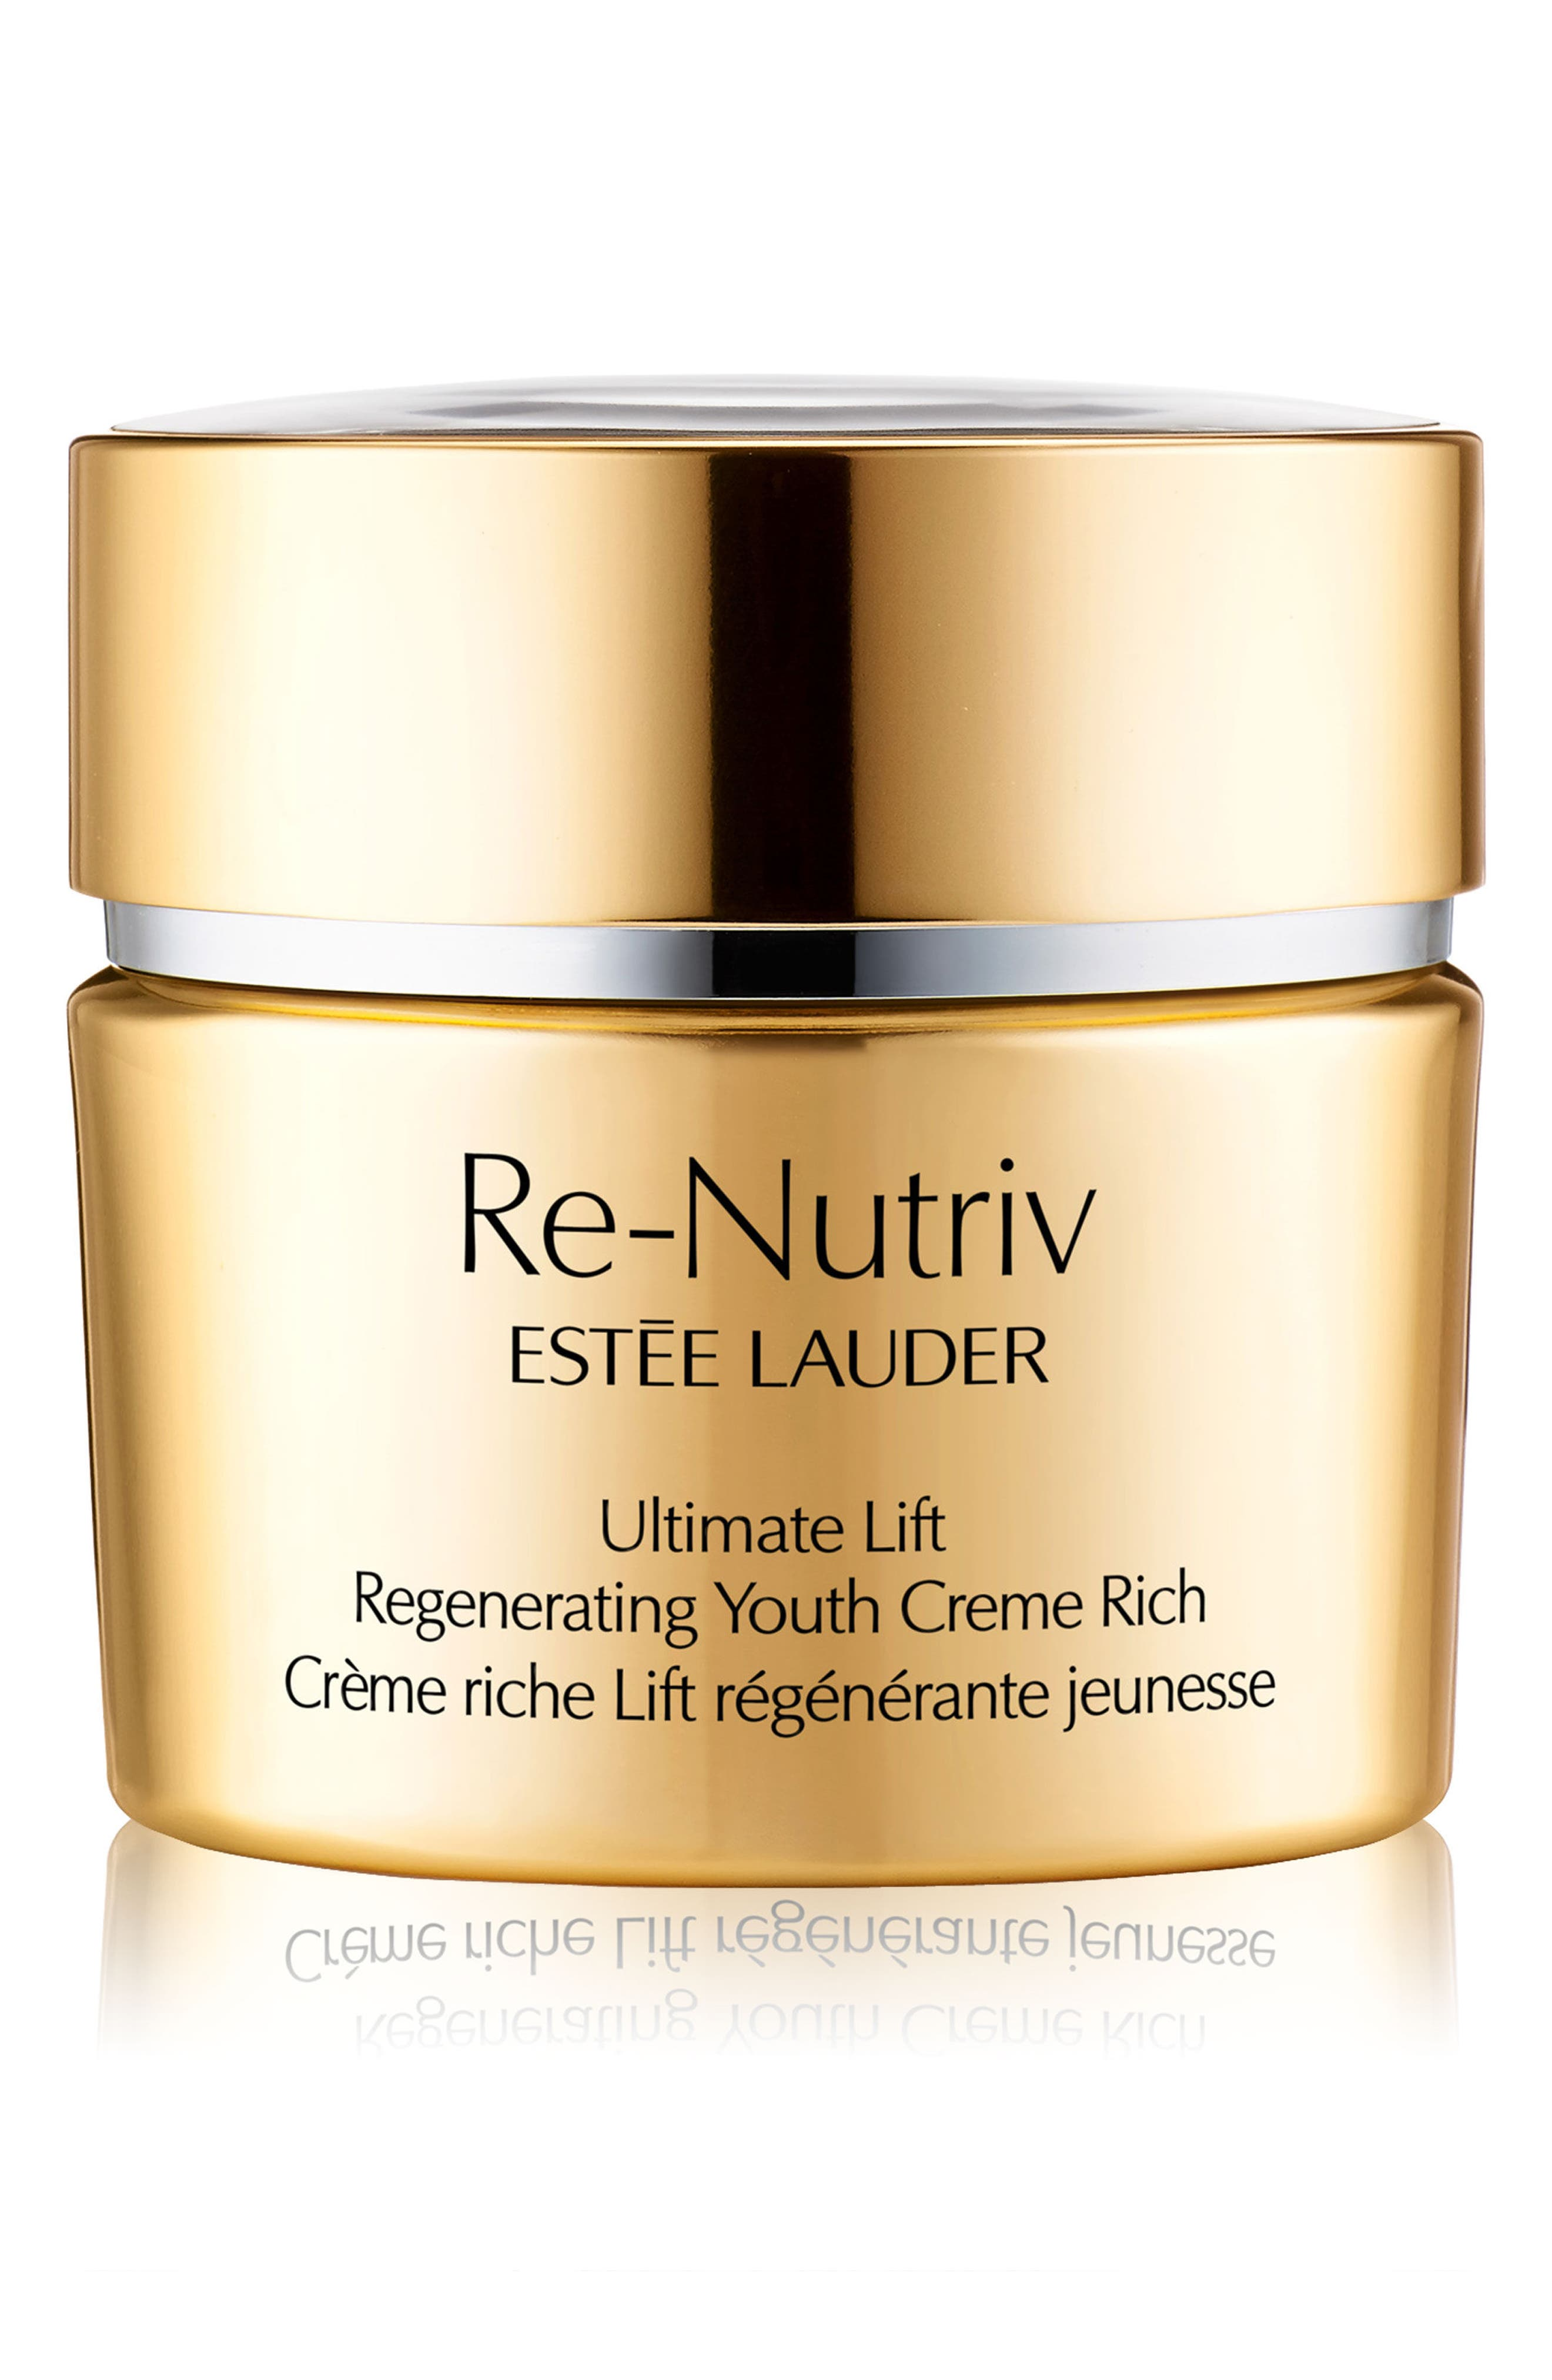 Re-Nutriv Ultimate Lift Regenerating Youth Creme Rich,                         Main,                         color, 000